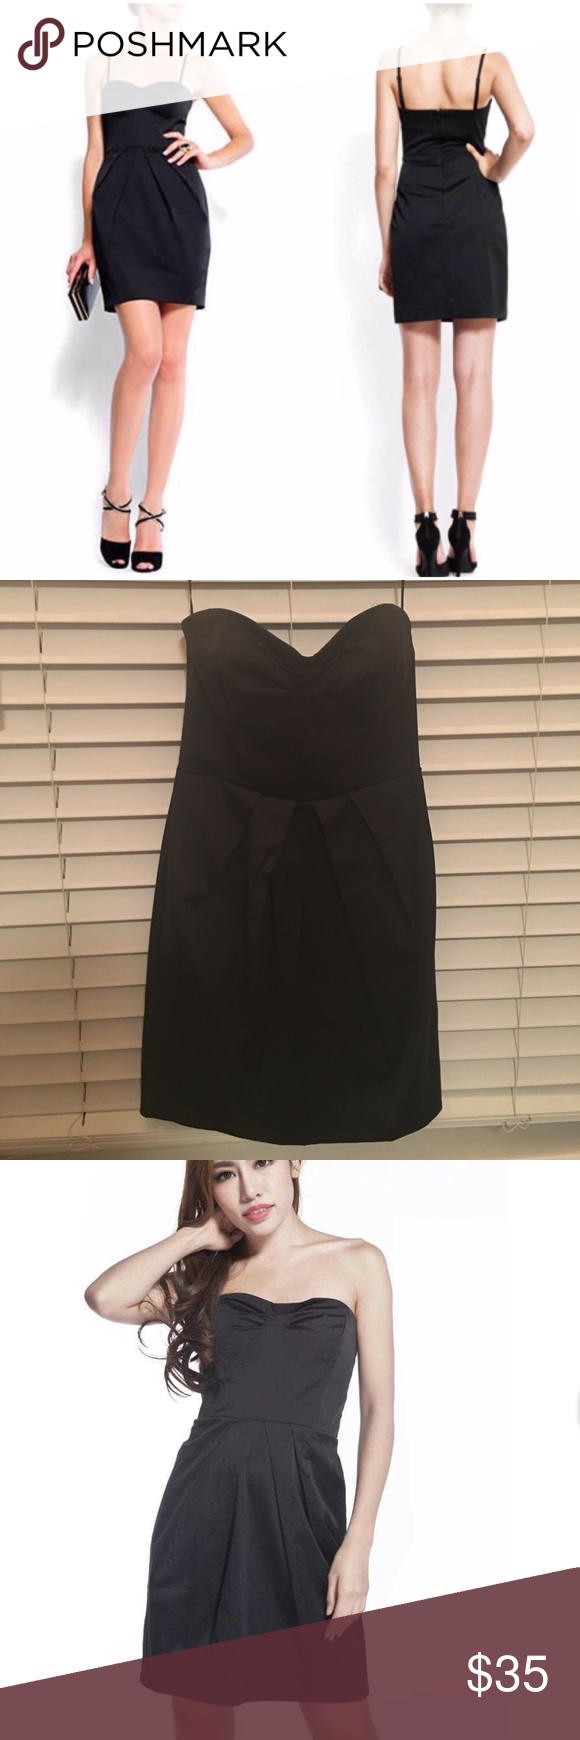 Strapless Black Dress Mango Never been worn. Size xs. Straps are extensions. You can put them on or take them off. Don't hesitate to make an any kind of offer! Mango Dresses Strapless